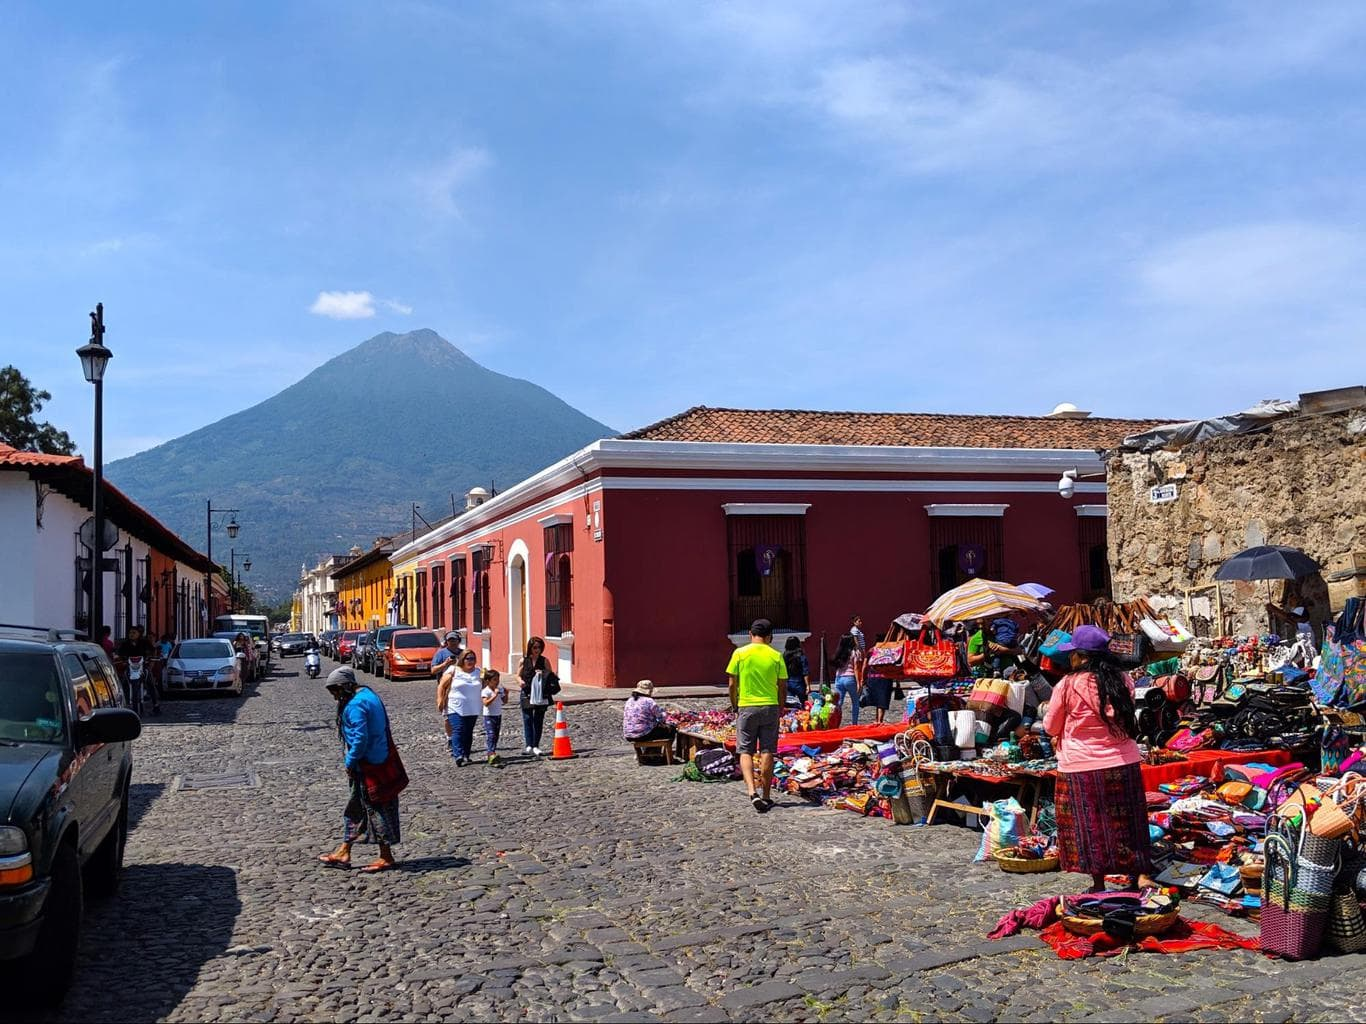 The dominant architectural style in Anitgua Guatemala is Baroque